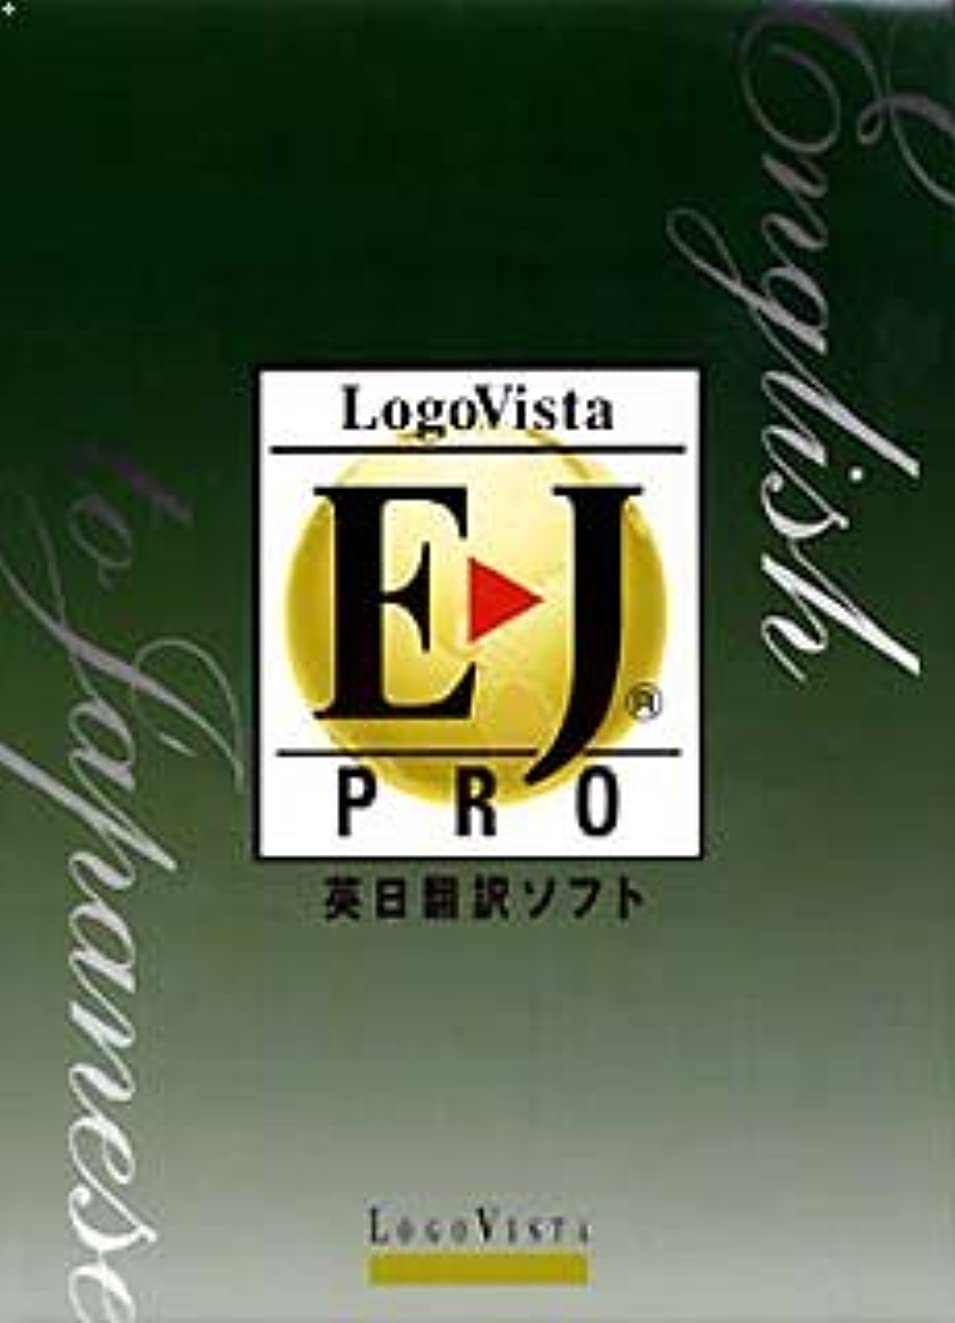 LogoVista E to J Pro Ver.4.5 for Macintosh